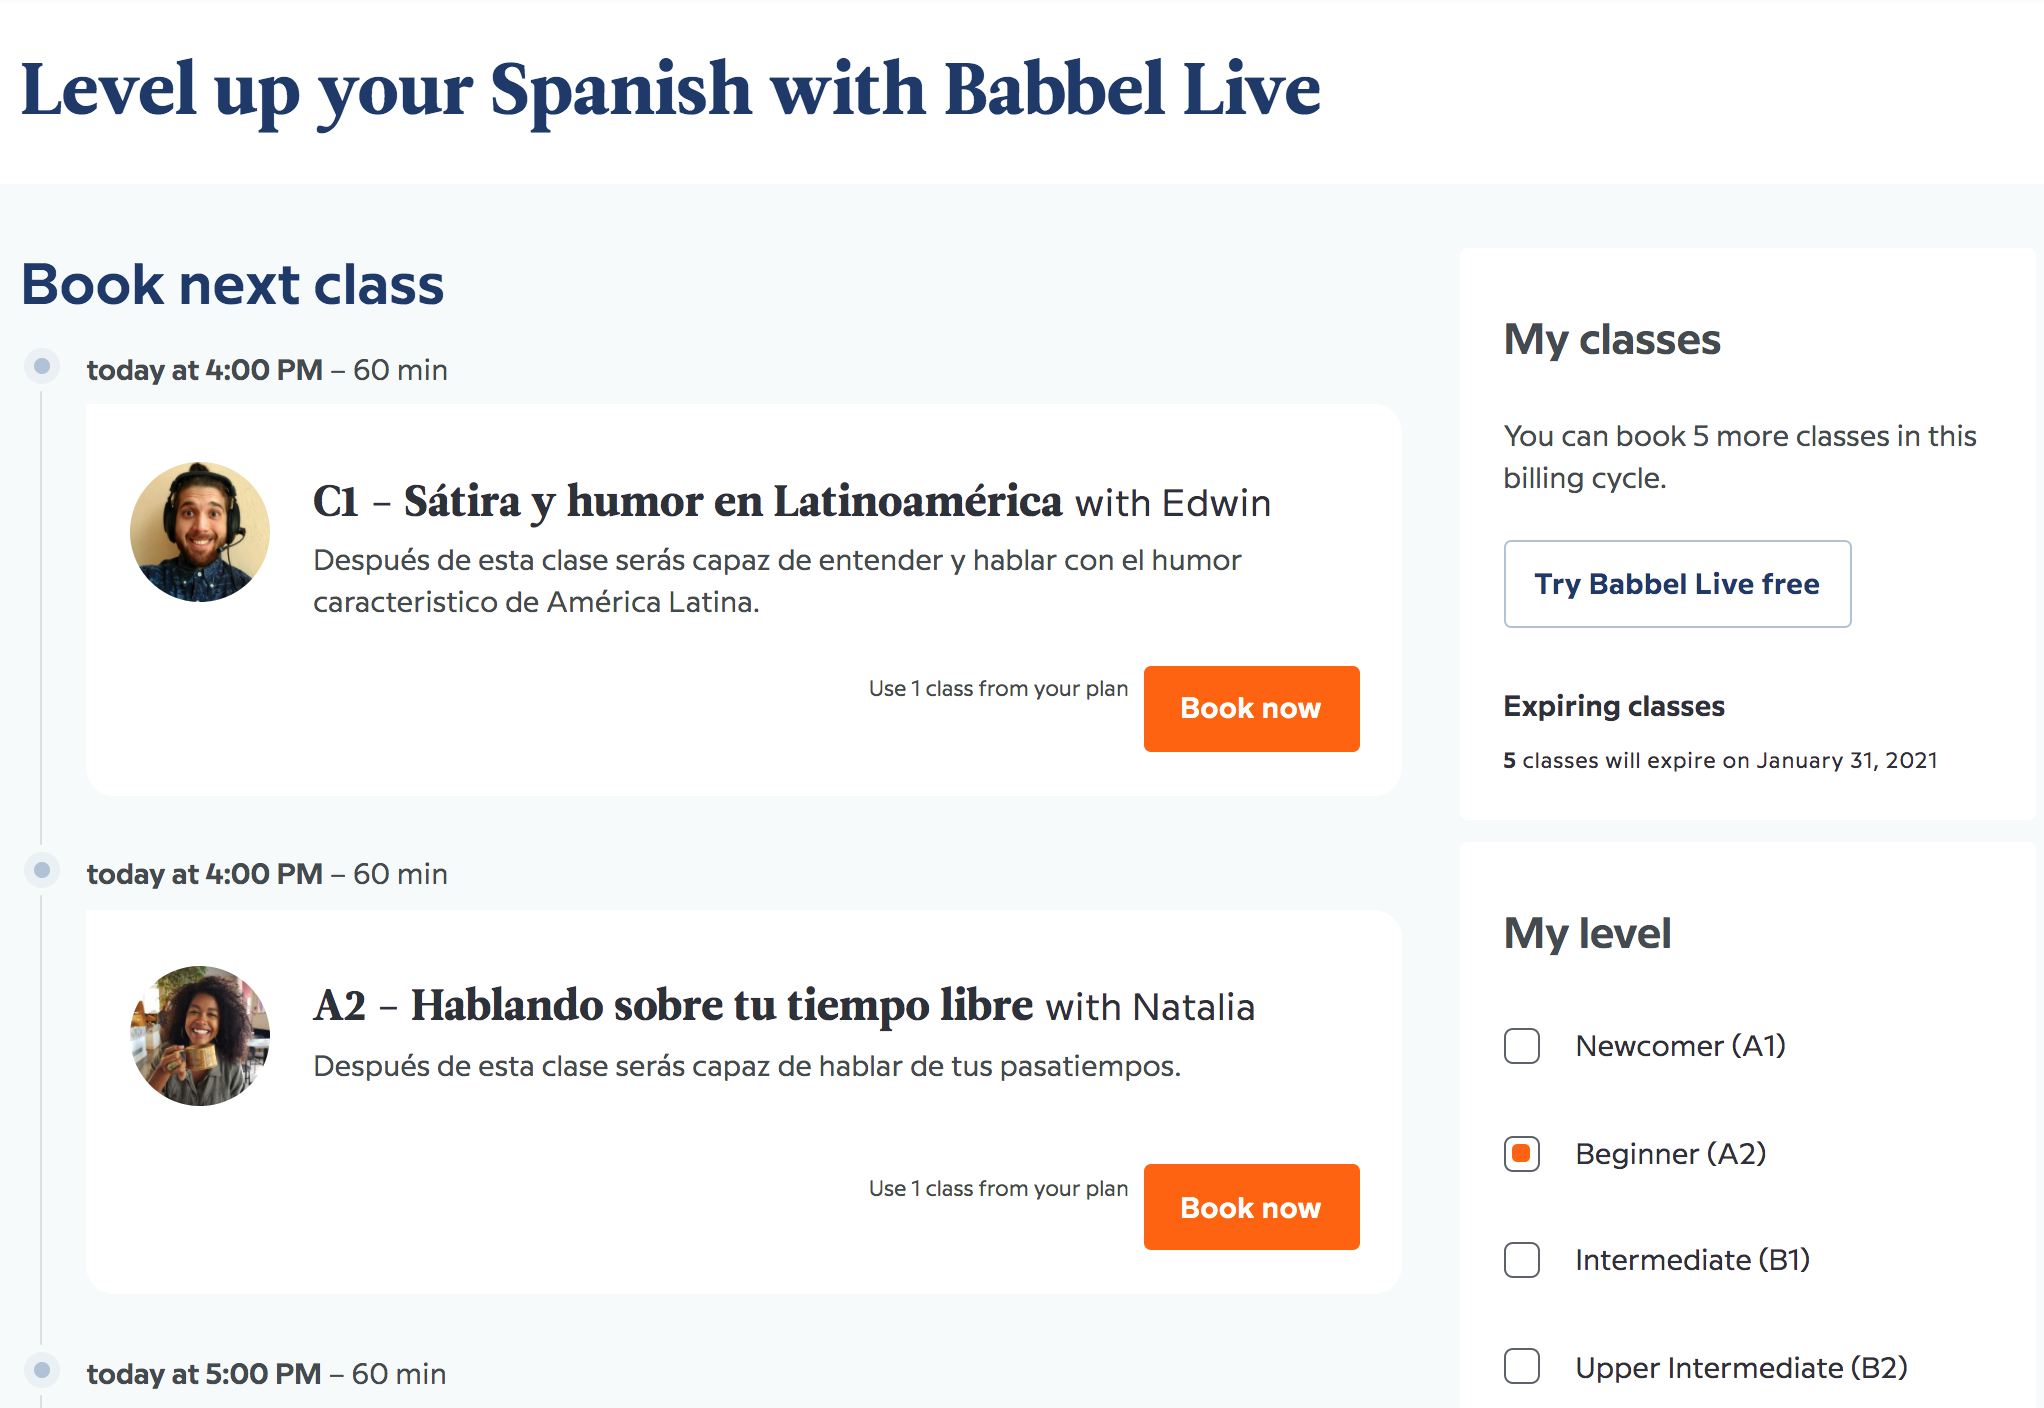 image of babbel-app dashboard